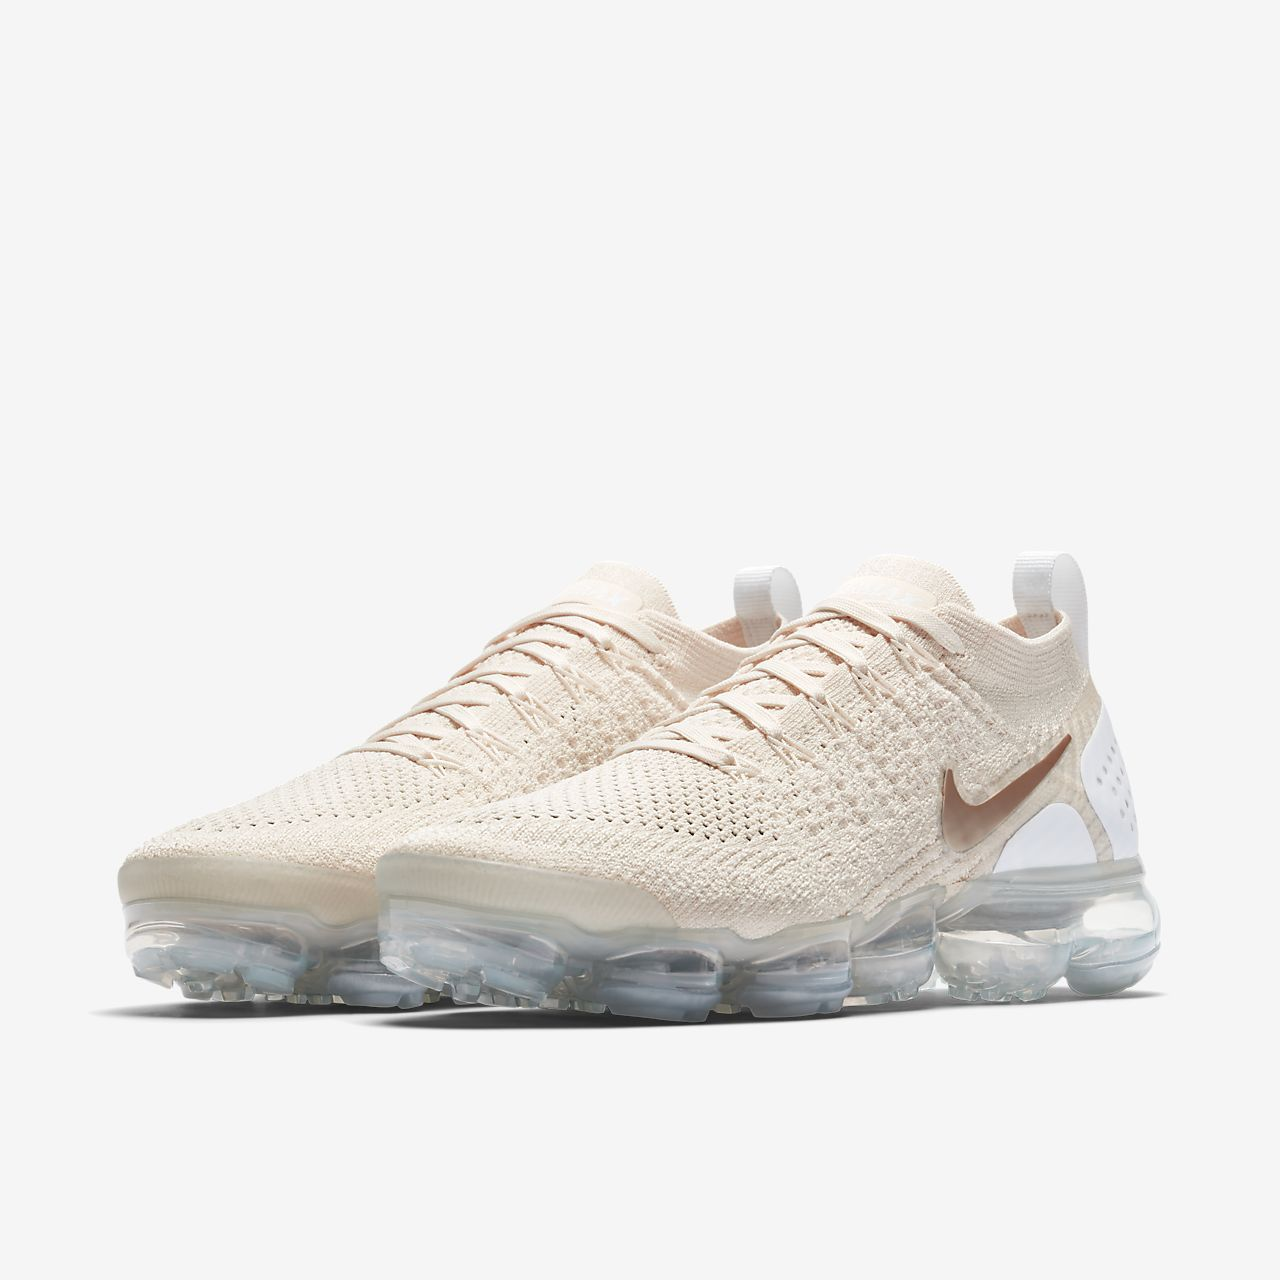 sports shoes bec65 286ee Air VaporMax Flyknit 2 Women's Shoe | s t y l e in 2019 ...